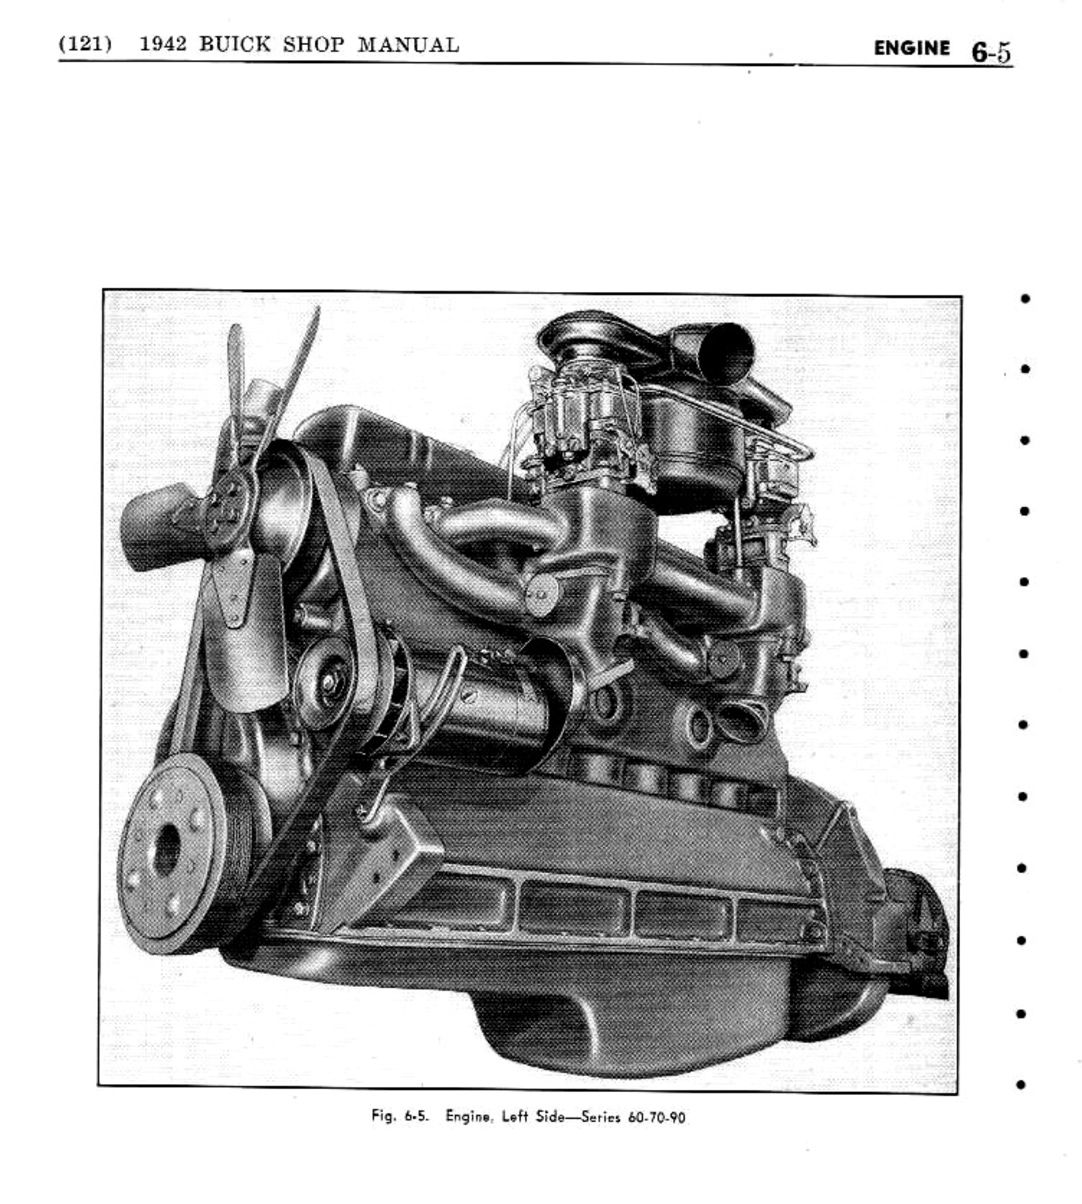 Pin by Ossi Olematon on Vintage ads Pinterest Engine